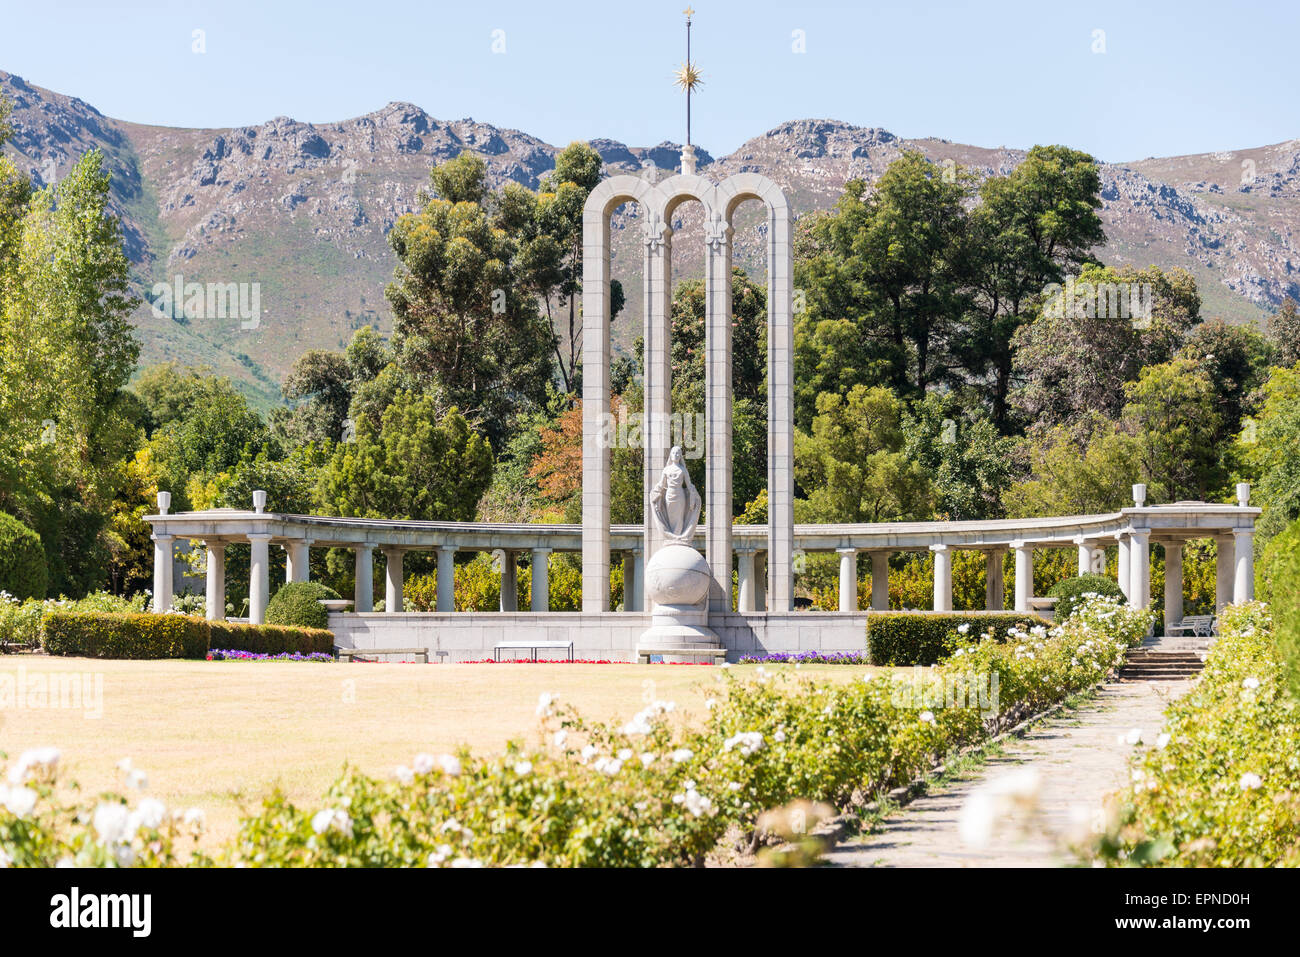 The Huguenot Memorial Monument, Franschhoek, Cape Winelands District, Western Cape Province, Republic of South Africa - Stock Image